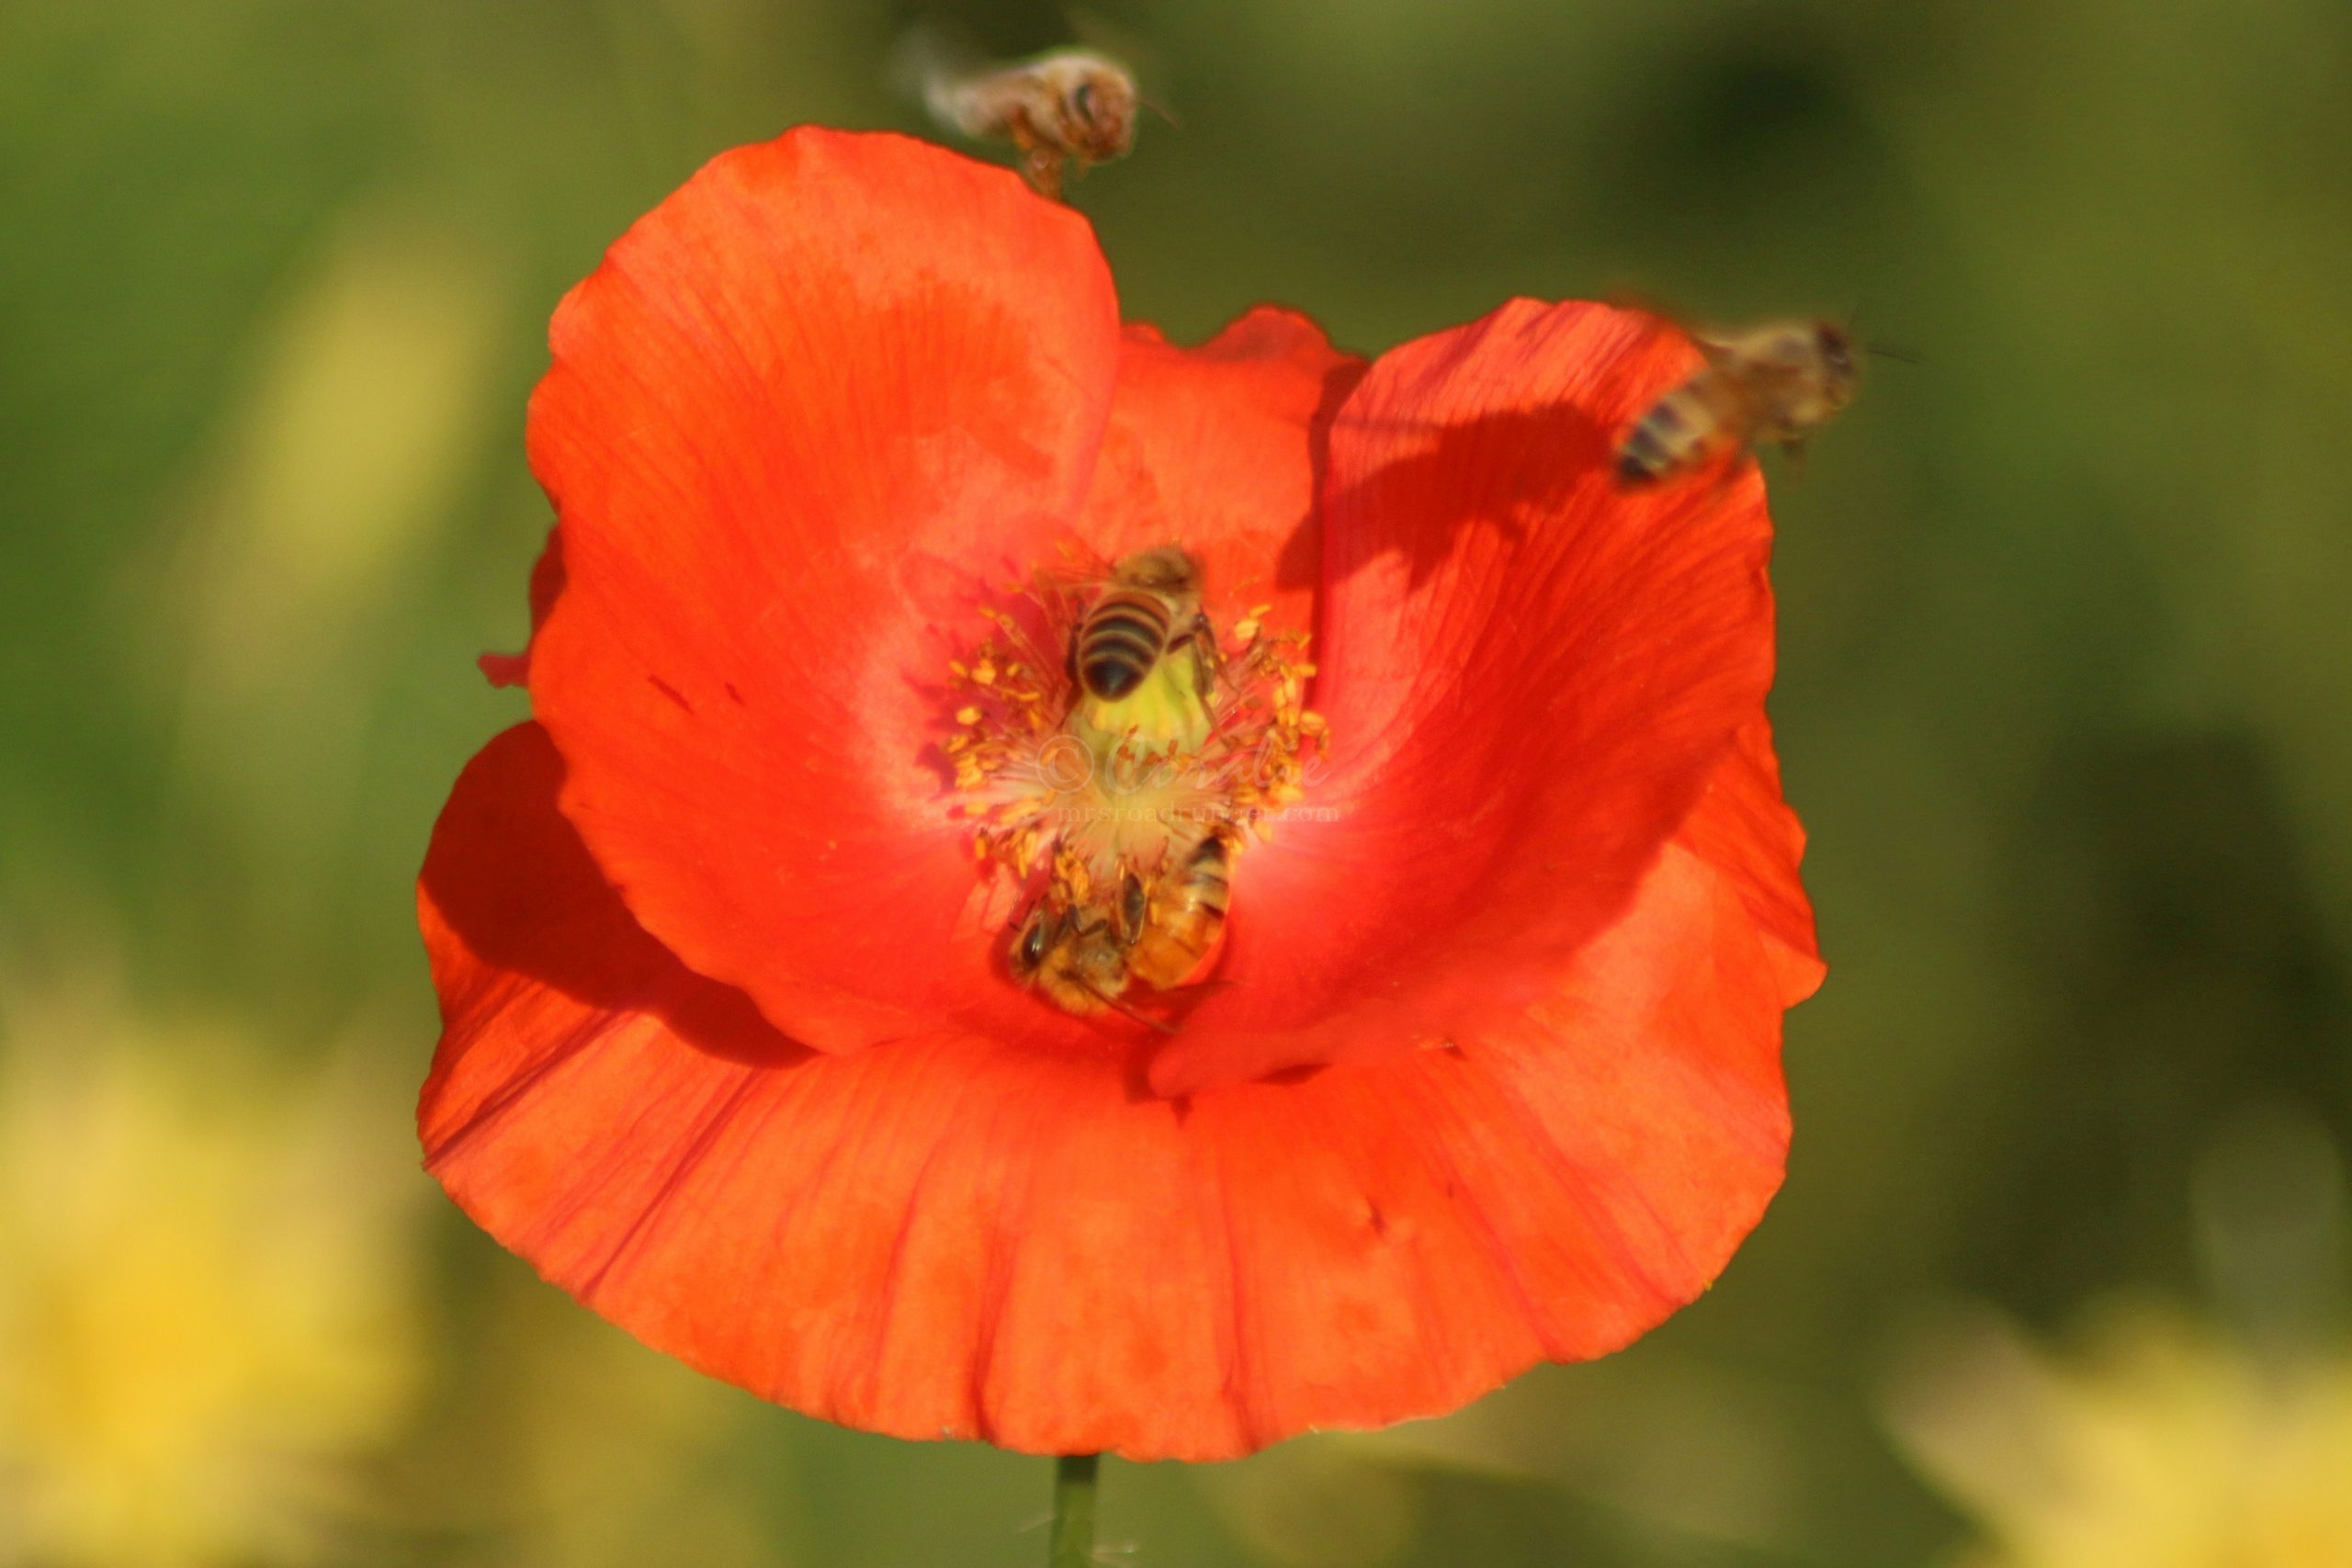 Honeybees on The Red Poppy Flowers